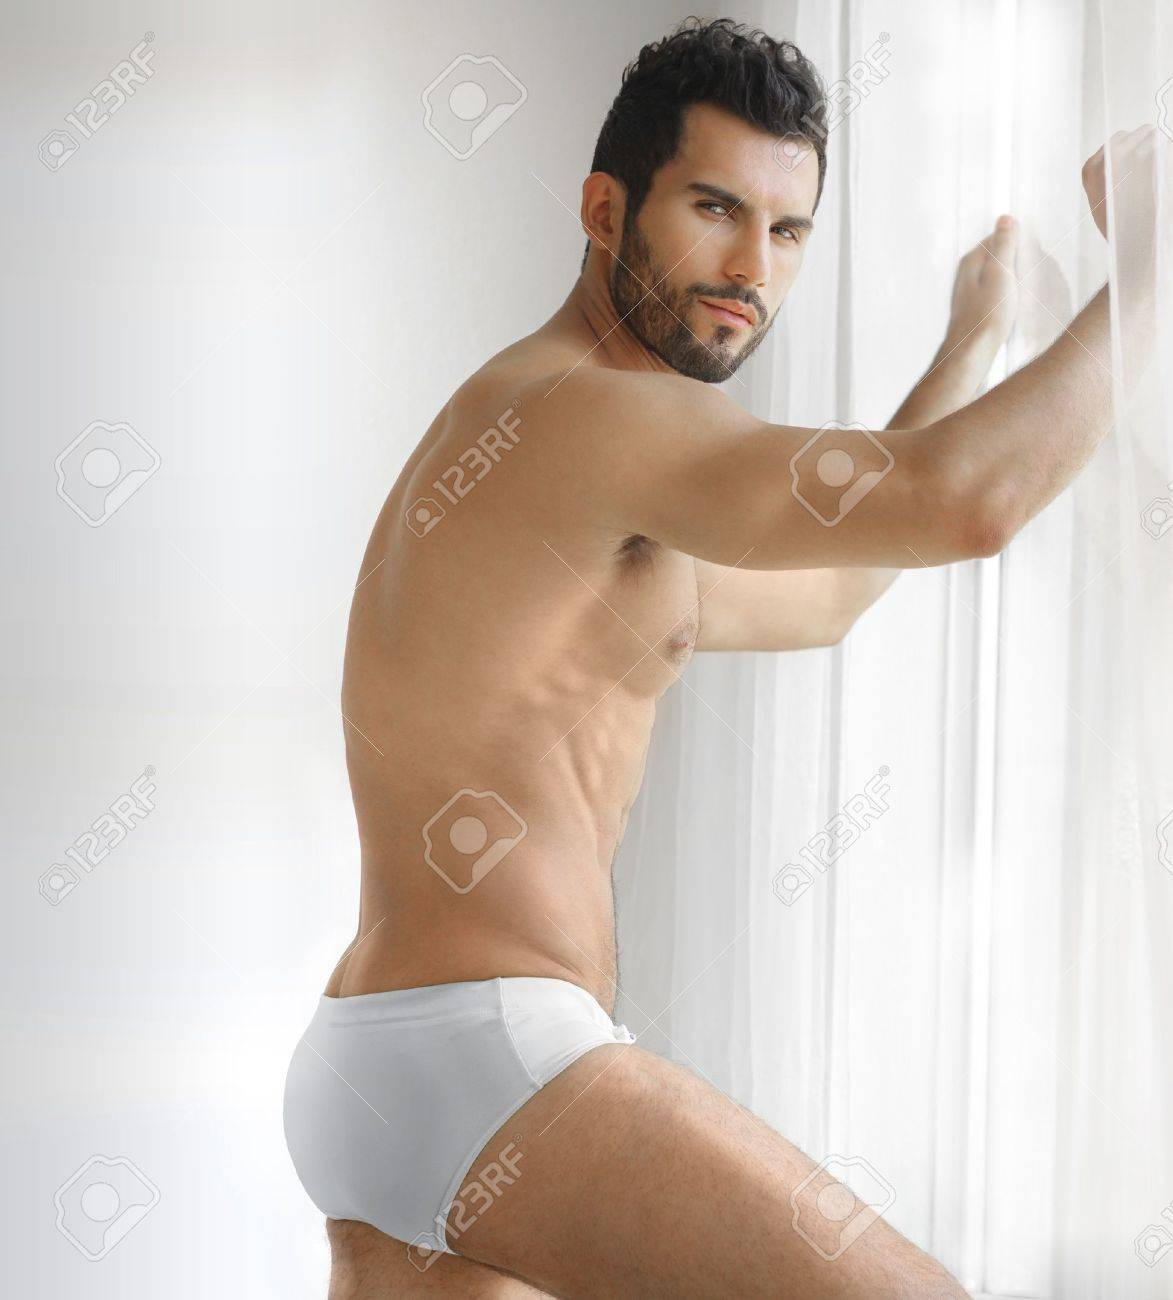 Stock Photo - Very sexy young male muscular model in white underwear in  front of window 4f50a8ff7ee0